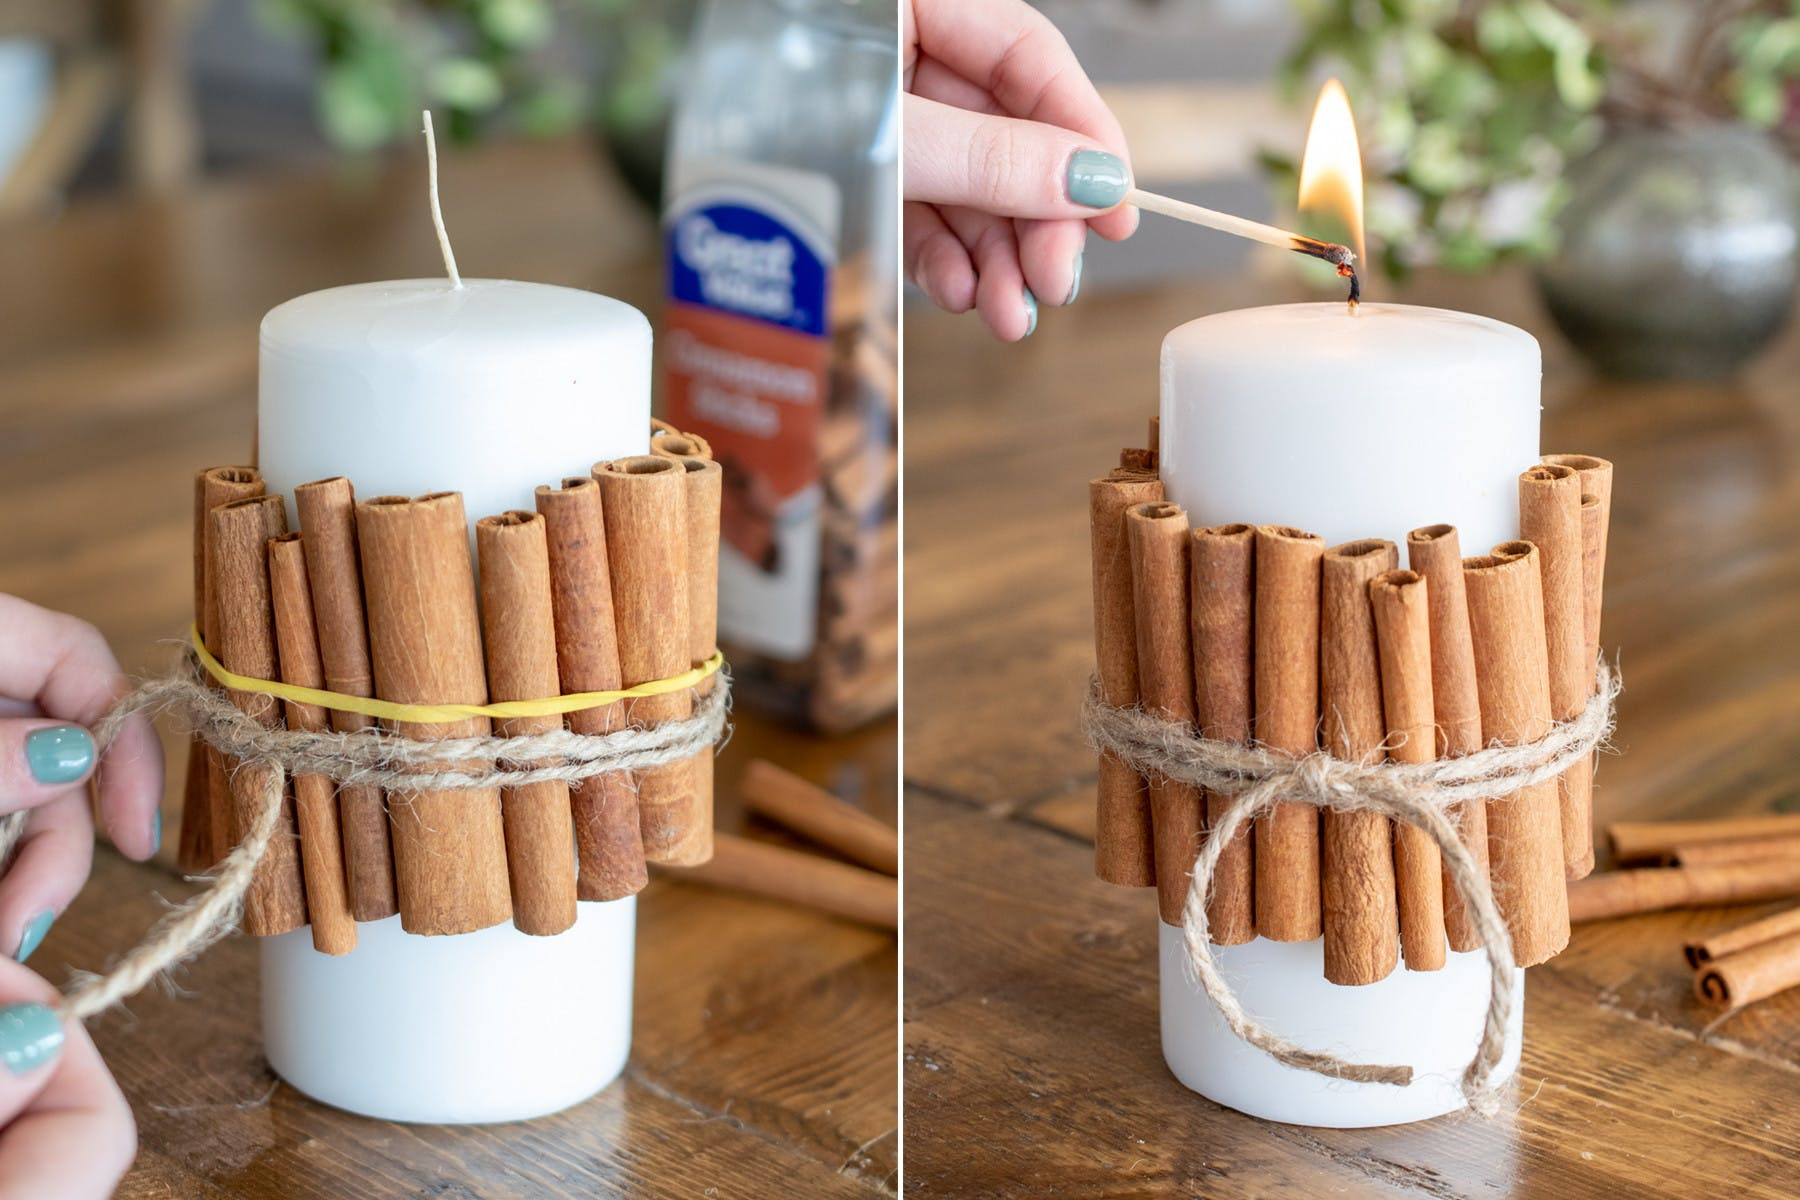 23 Homemade Air Fresheners That Will Make Your House Smell Ah Mazing The Krazy Coupon Lady